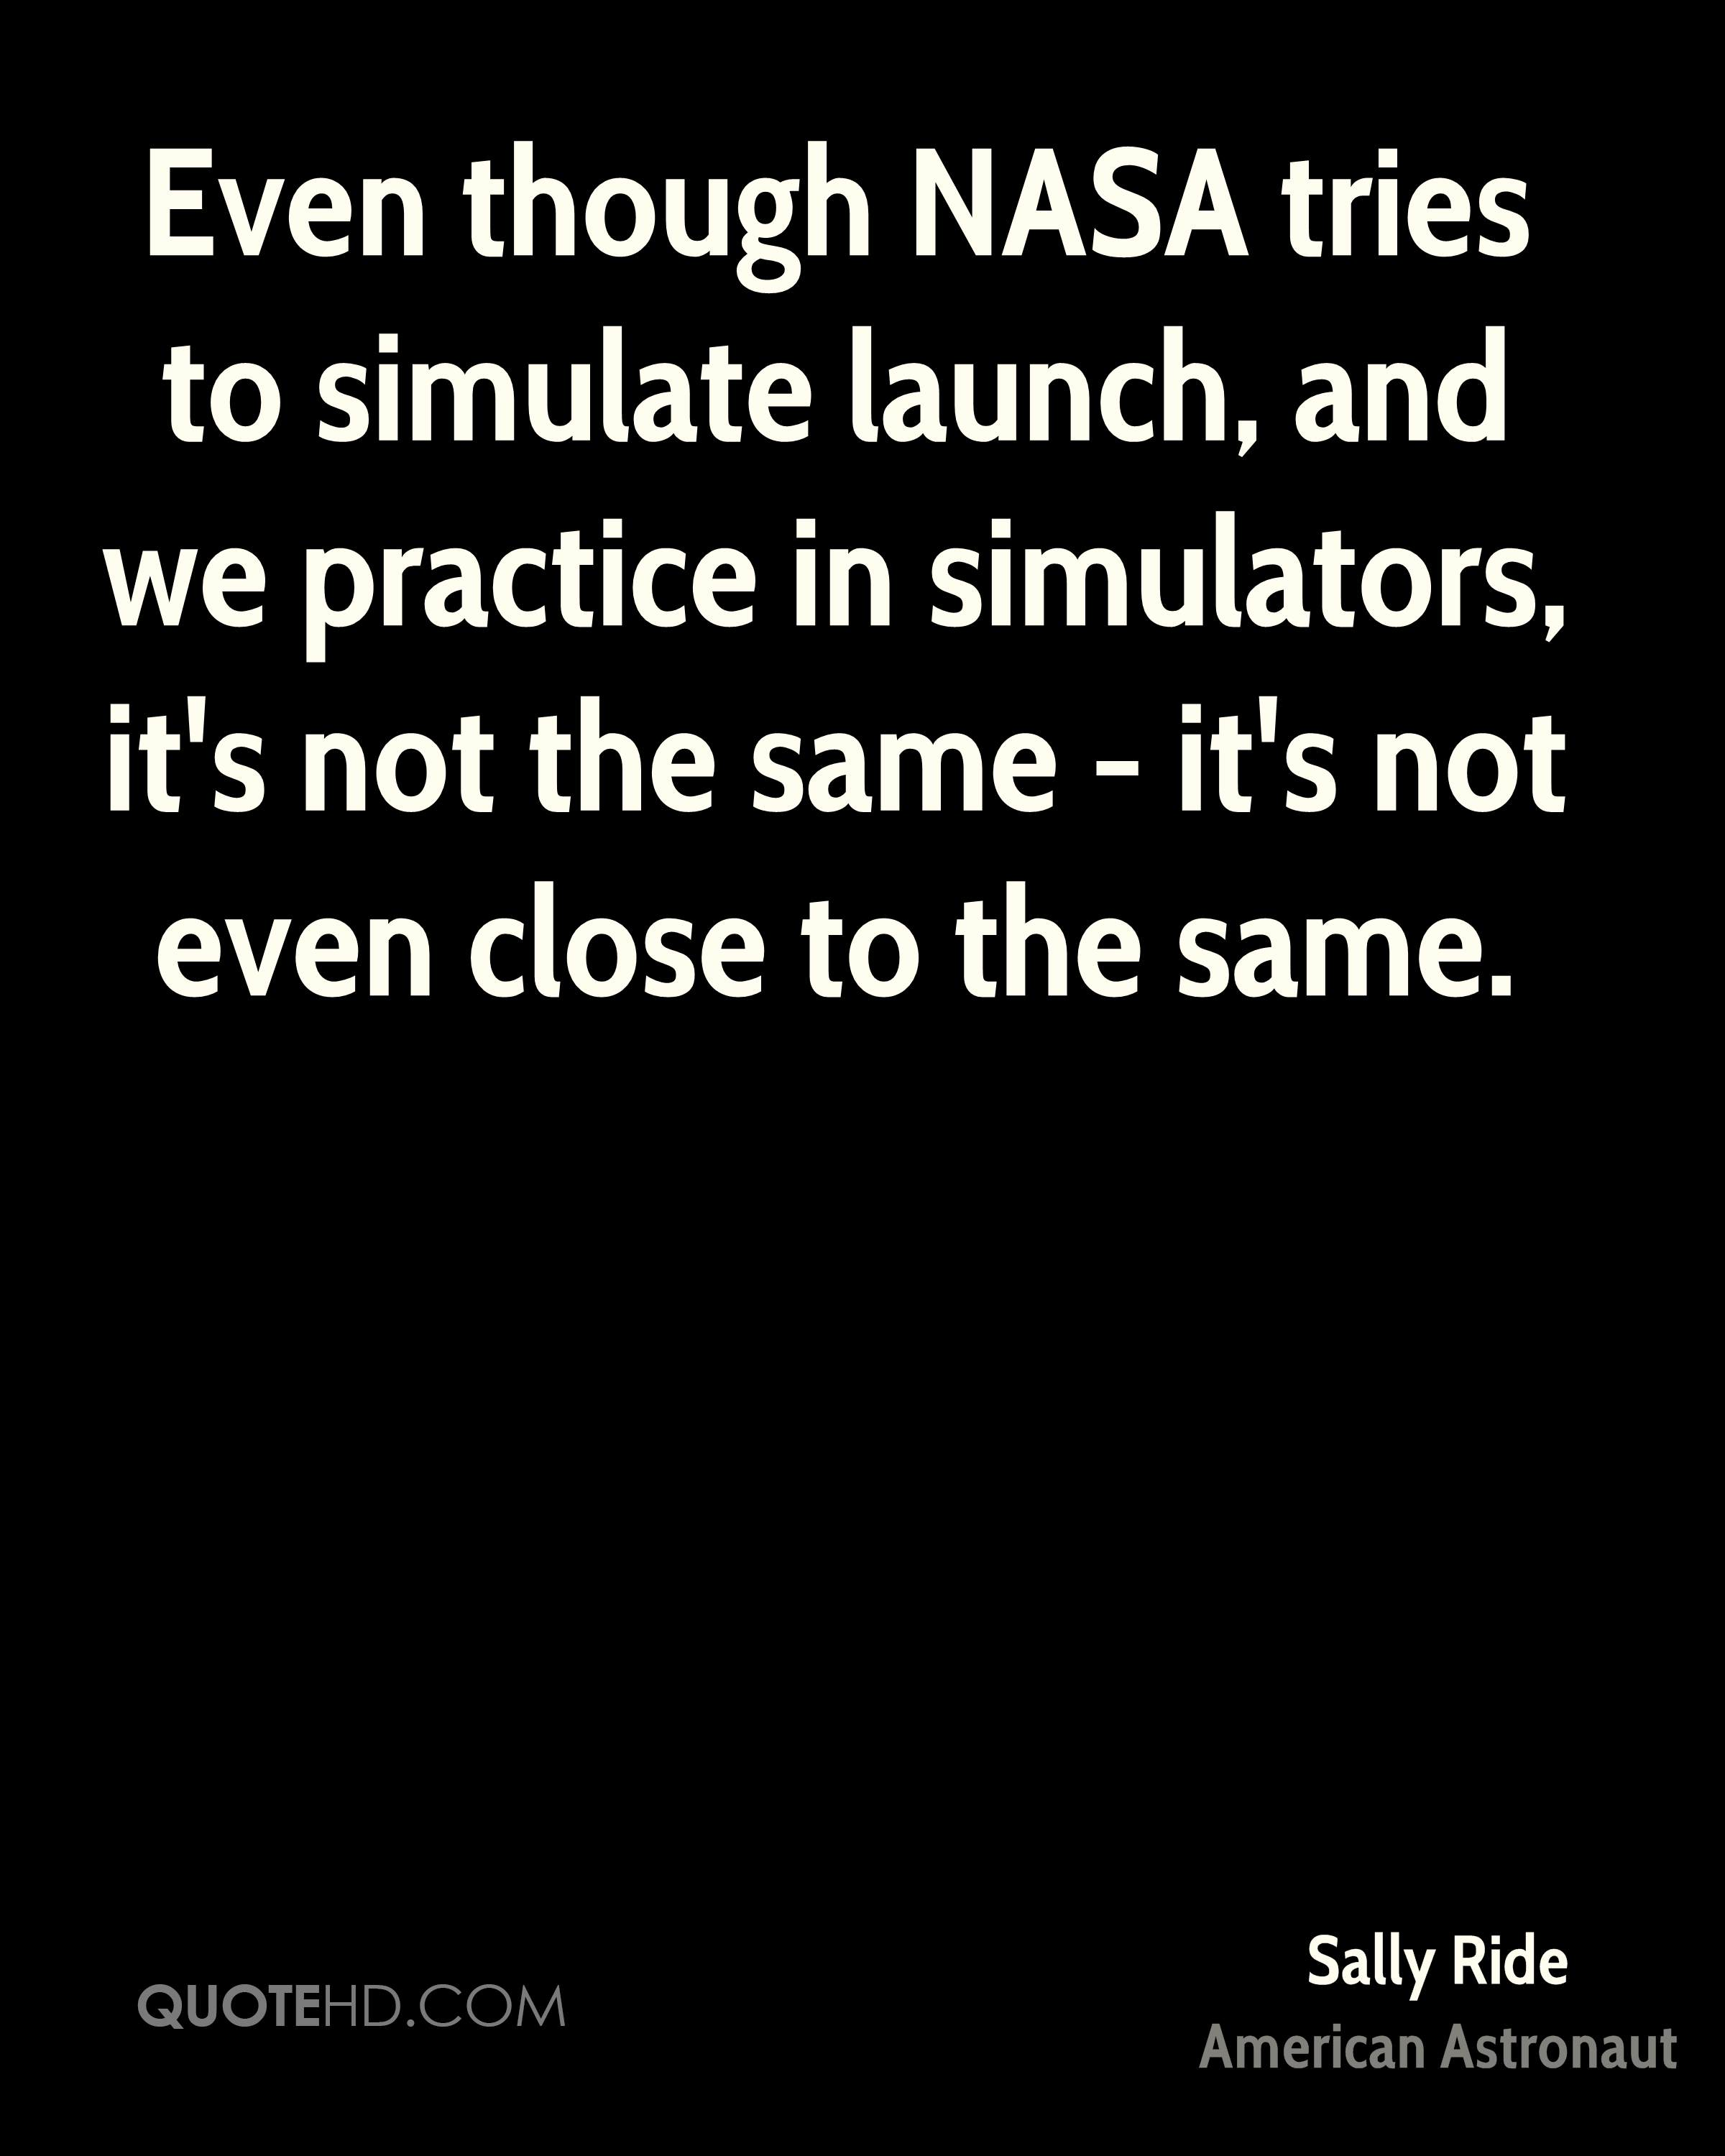 Even though NASA tries to simulate launch, and we practice in simulators, it's not the same - it's not even close to the same.